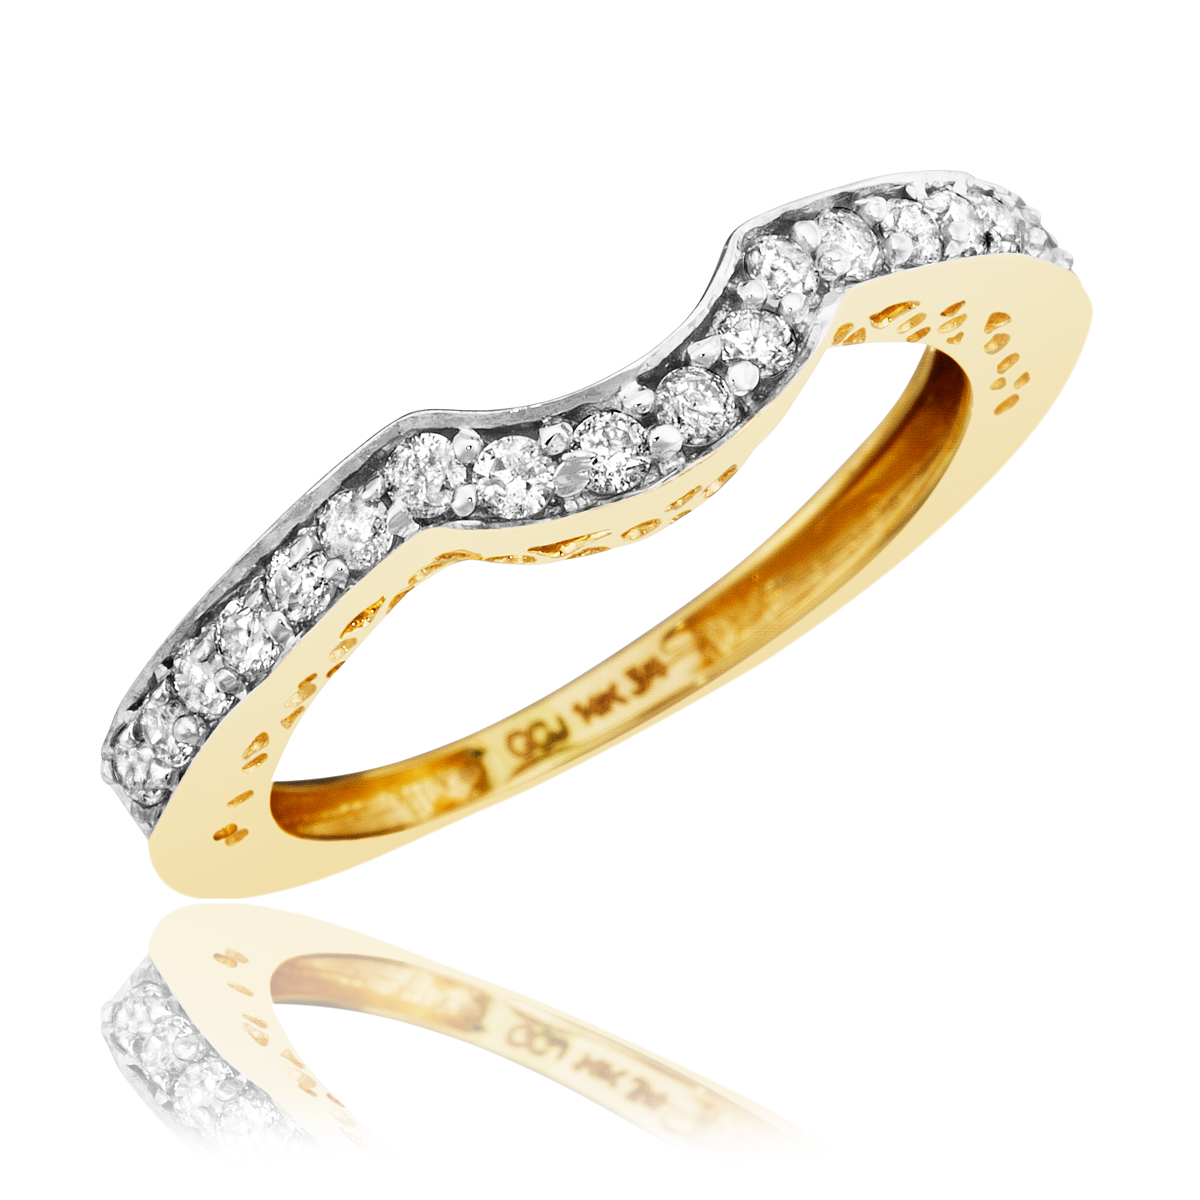 1 4 CT T W Diamond Women s Wedding Band 14K Yellow Gold